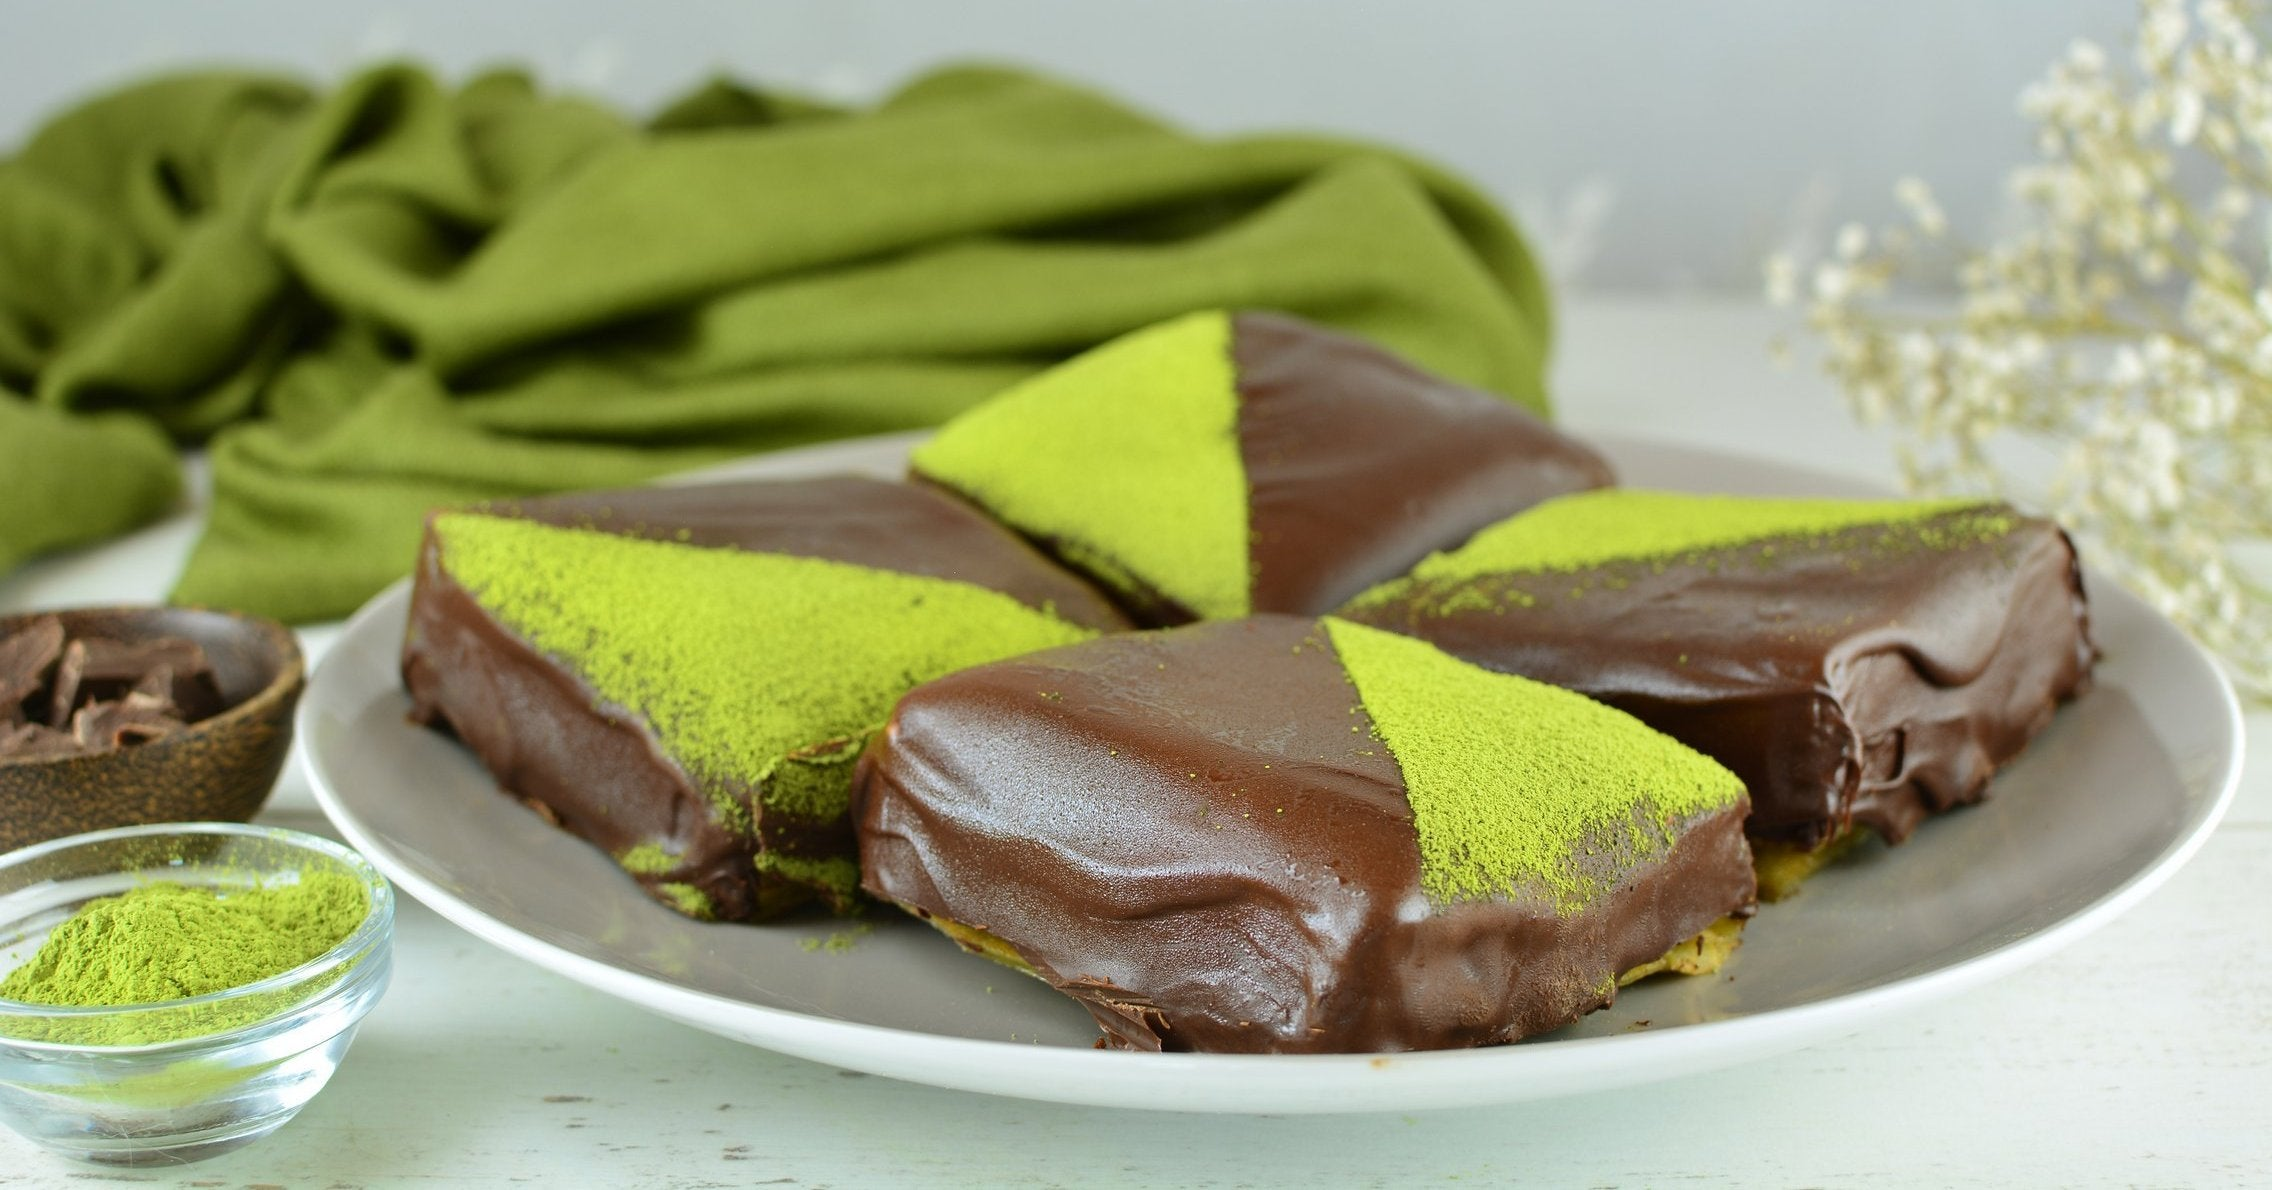 Matcha Crepe Cakes with Whipped Cream and Dark Chocolate